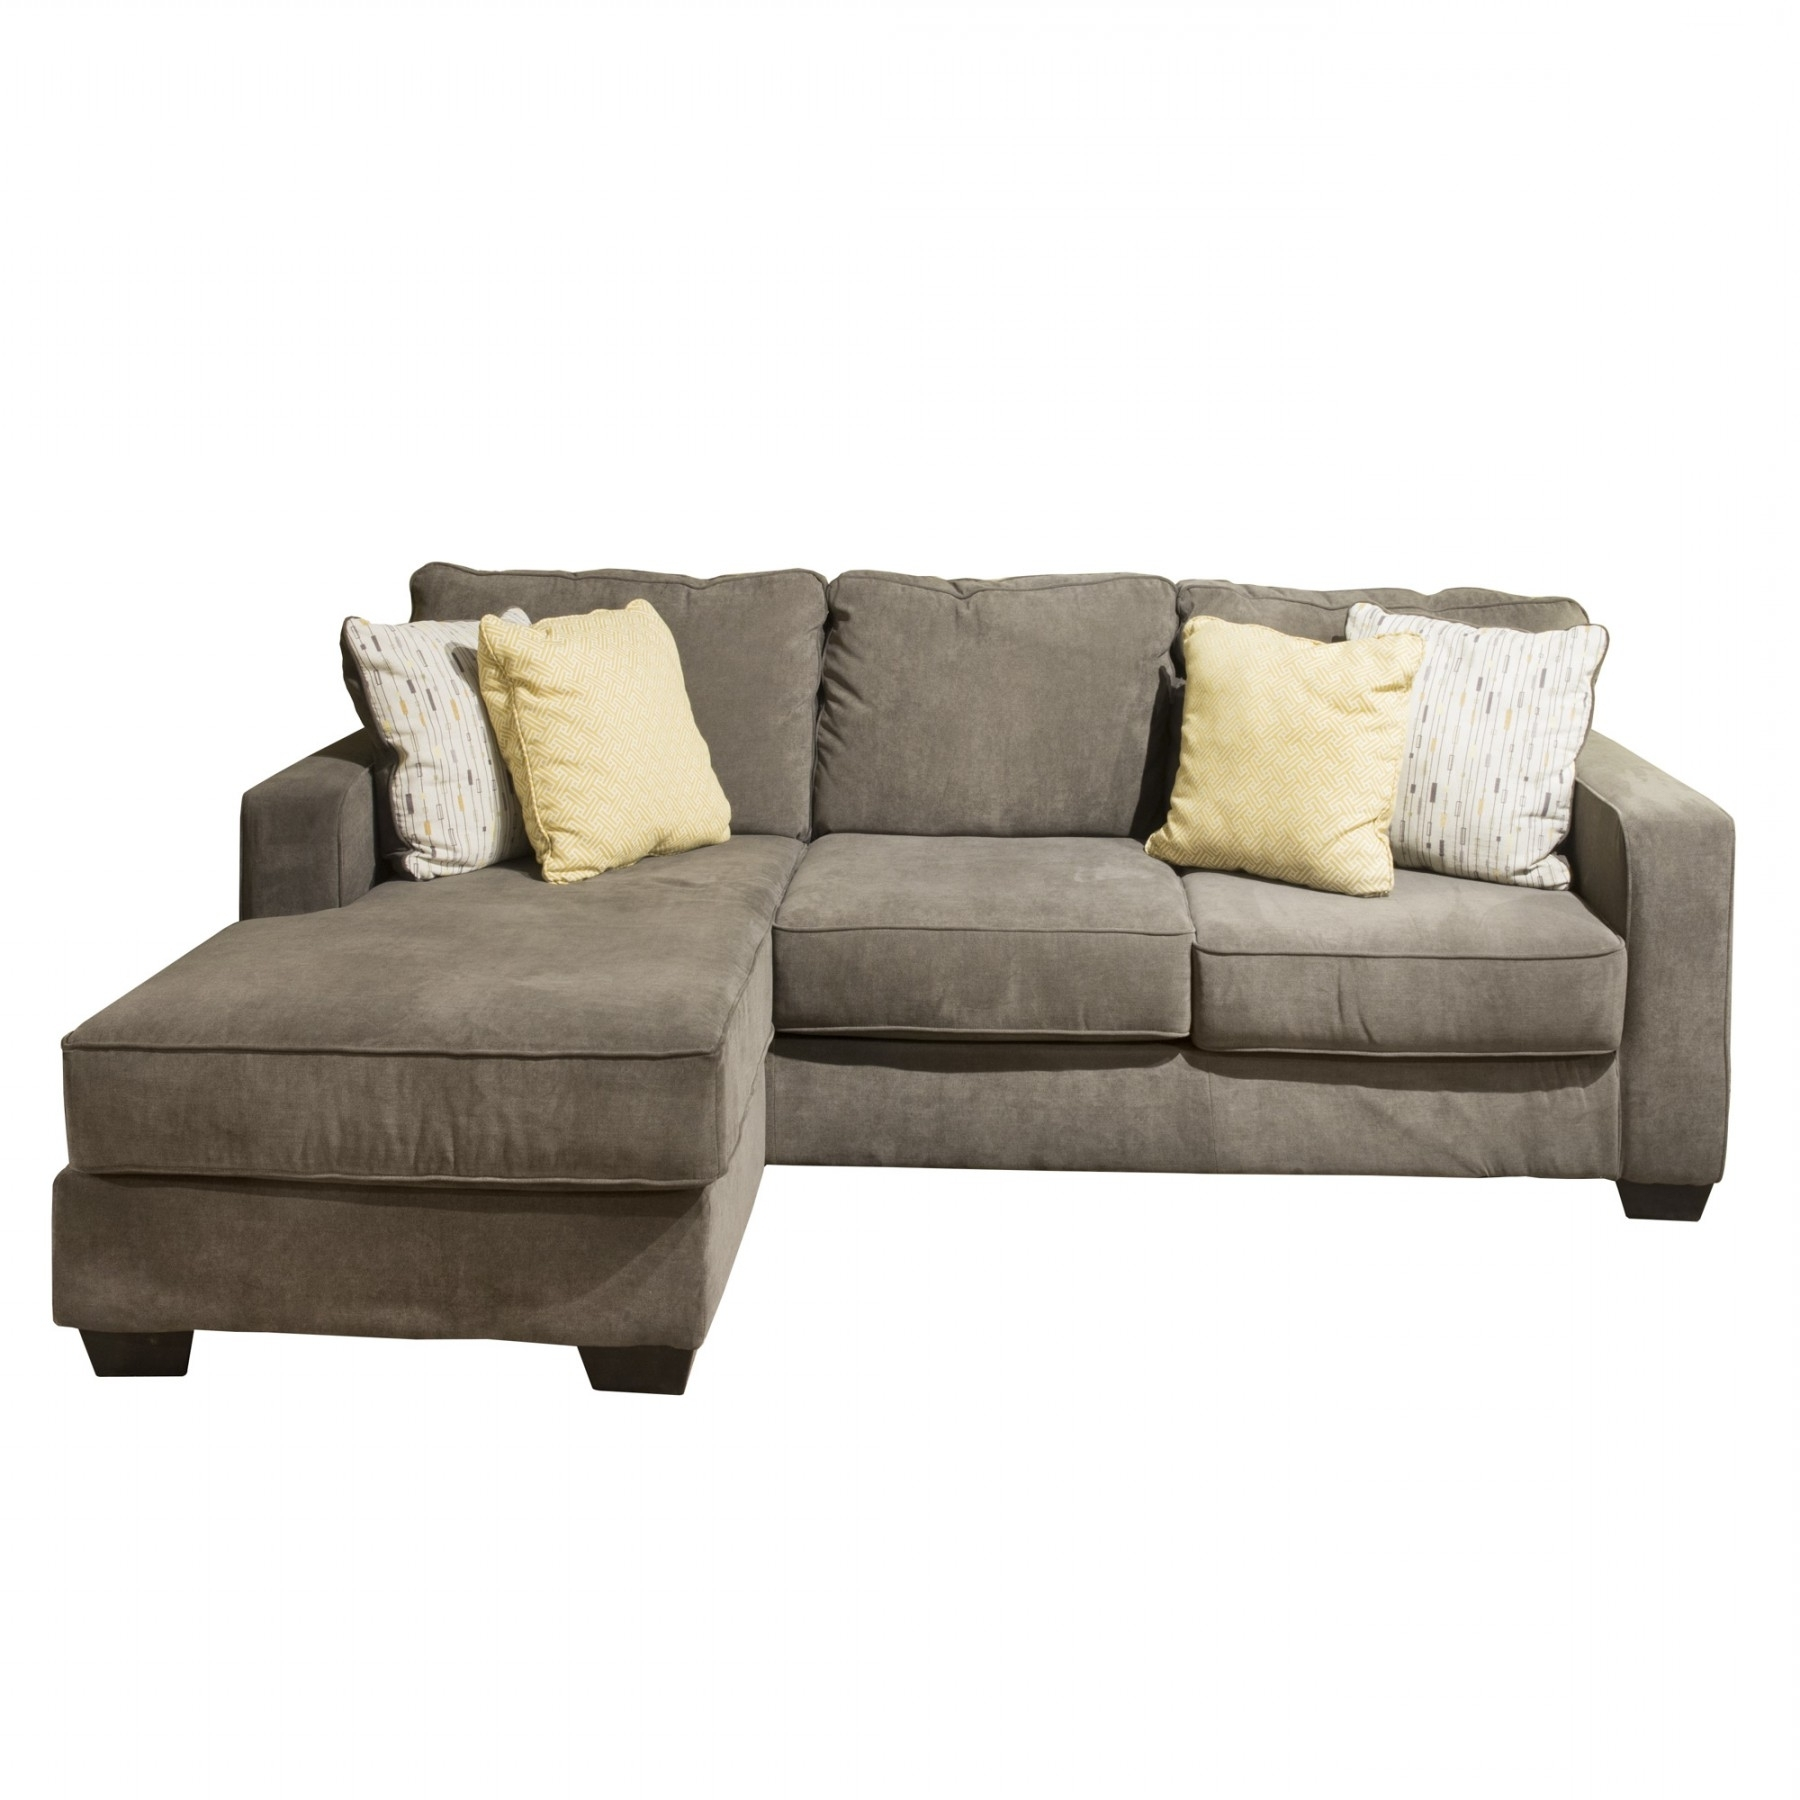 Most Up To Date Hodan Sofas With Chaise Intended For Hodan Sofa Chaise – Bernie & Phyl's Furniture  Ashley Furniture (View 6 of 15)